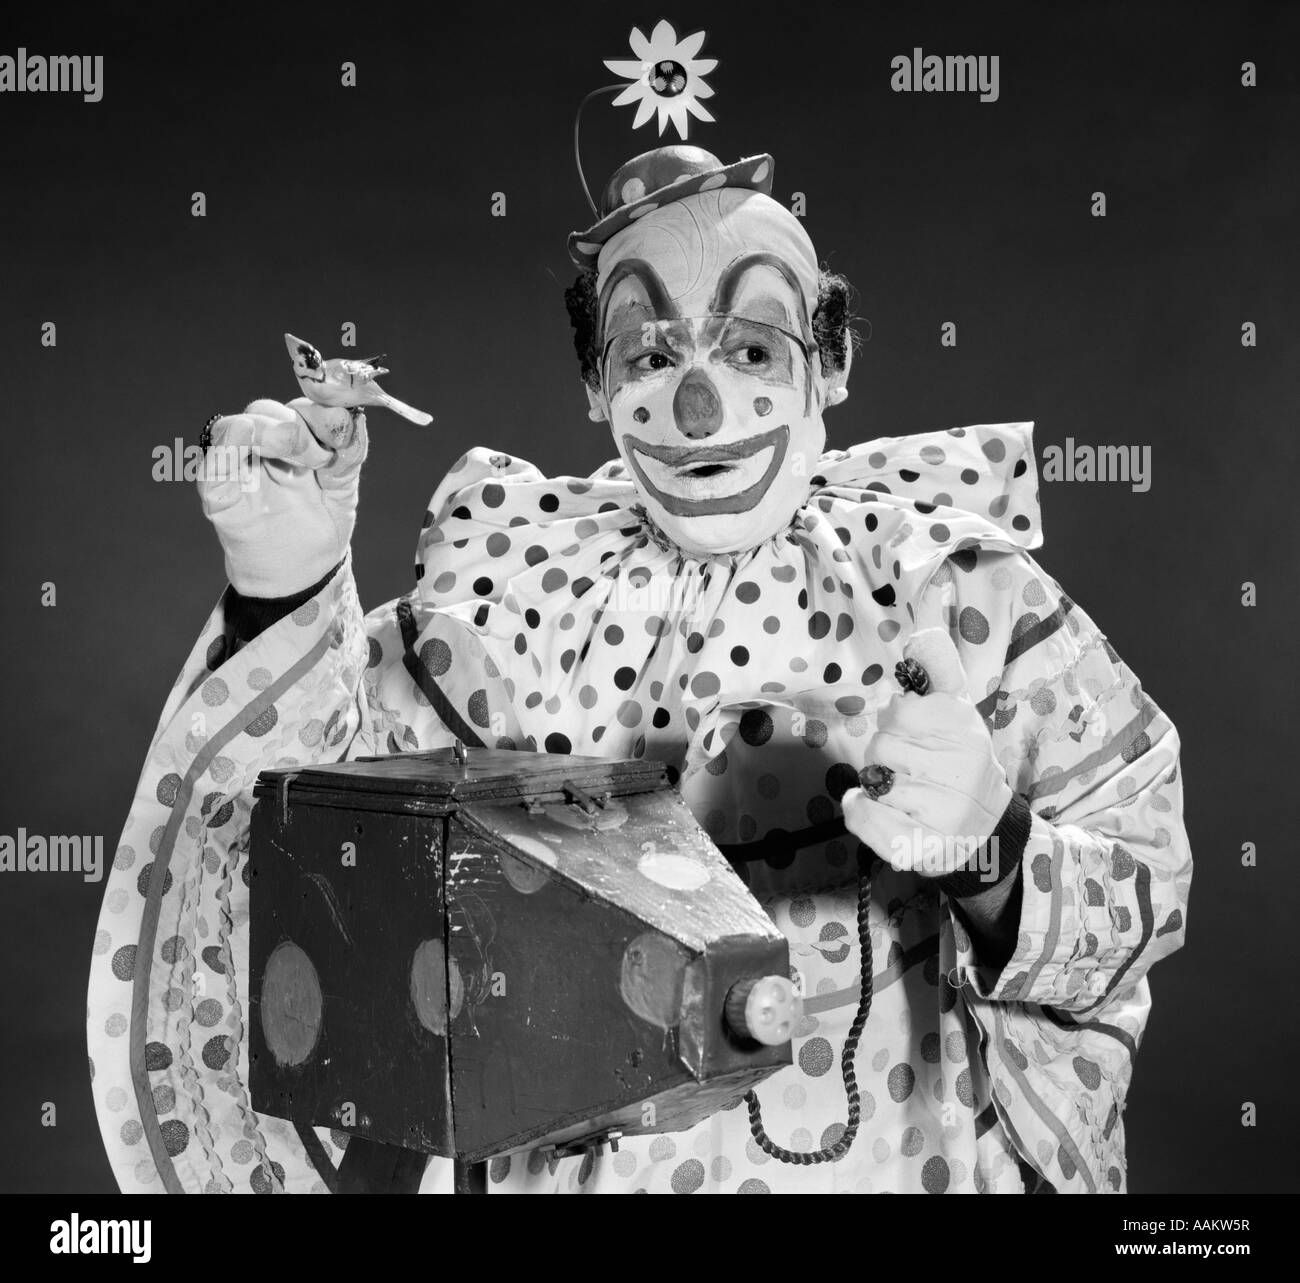 whiteface clown stock photos u0026 whiteface clown stock images alamy